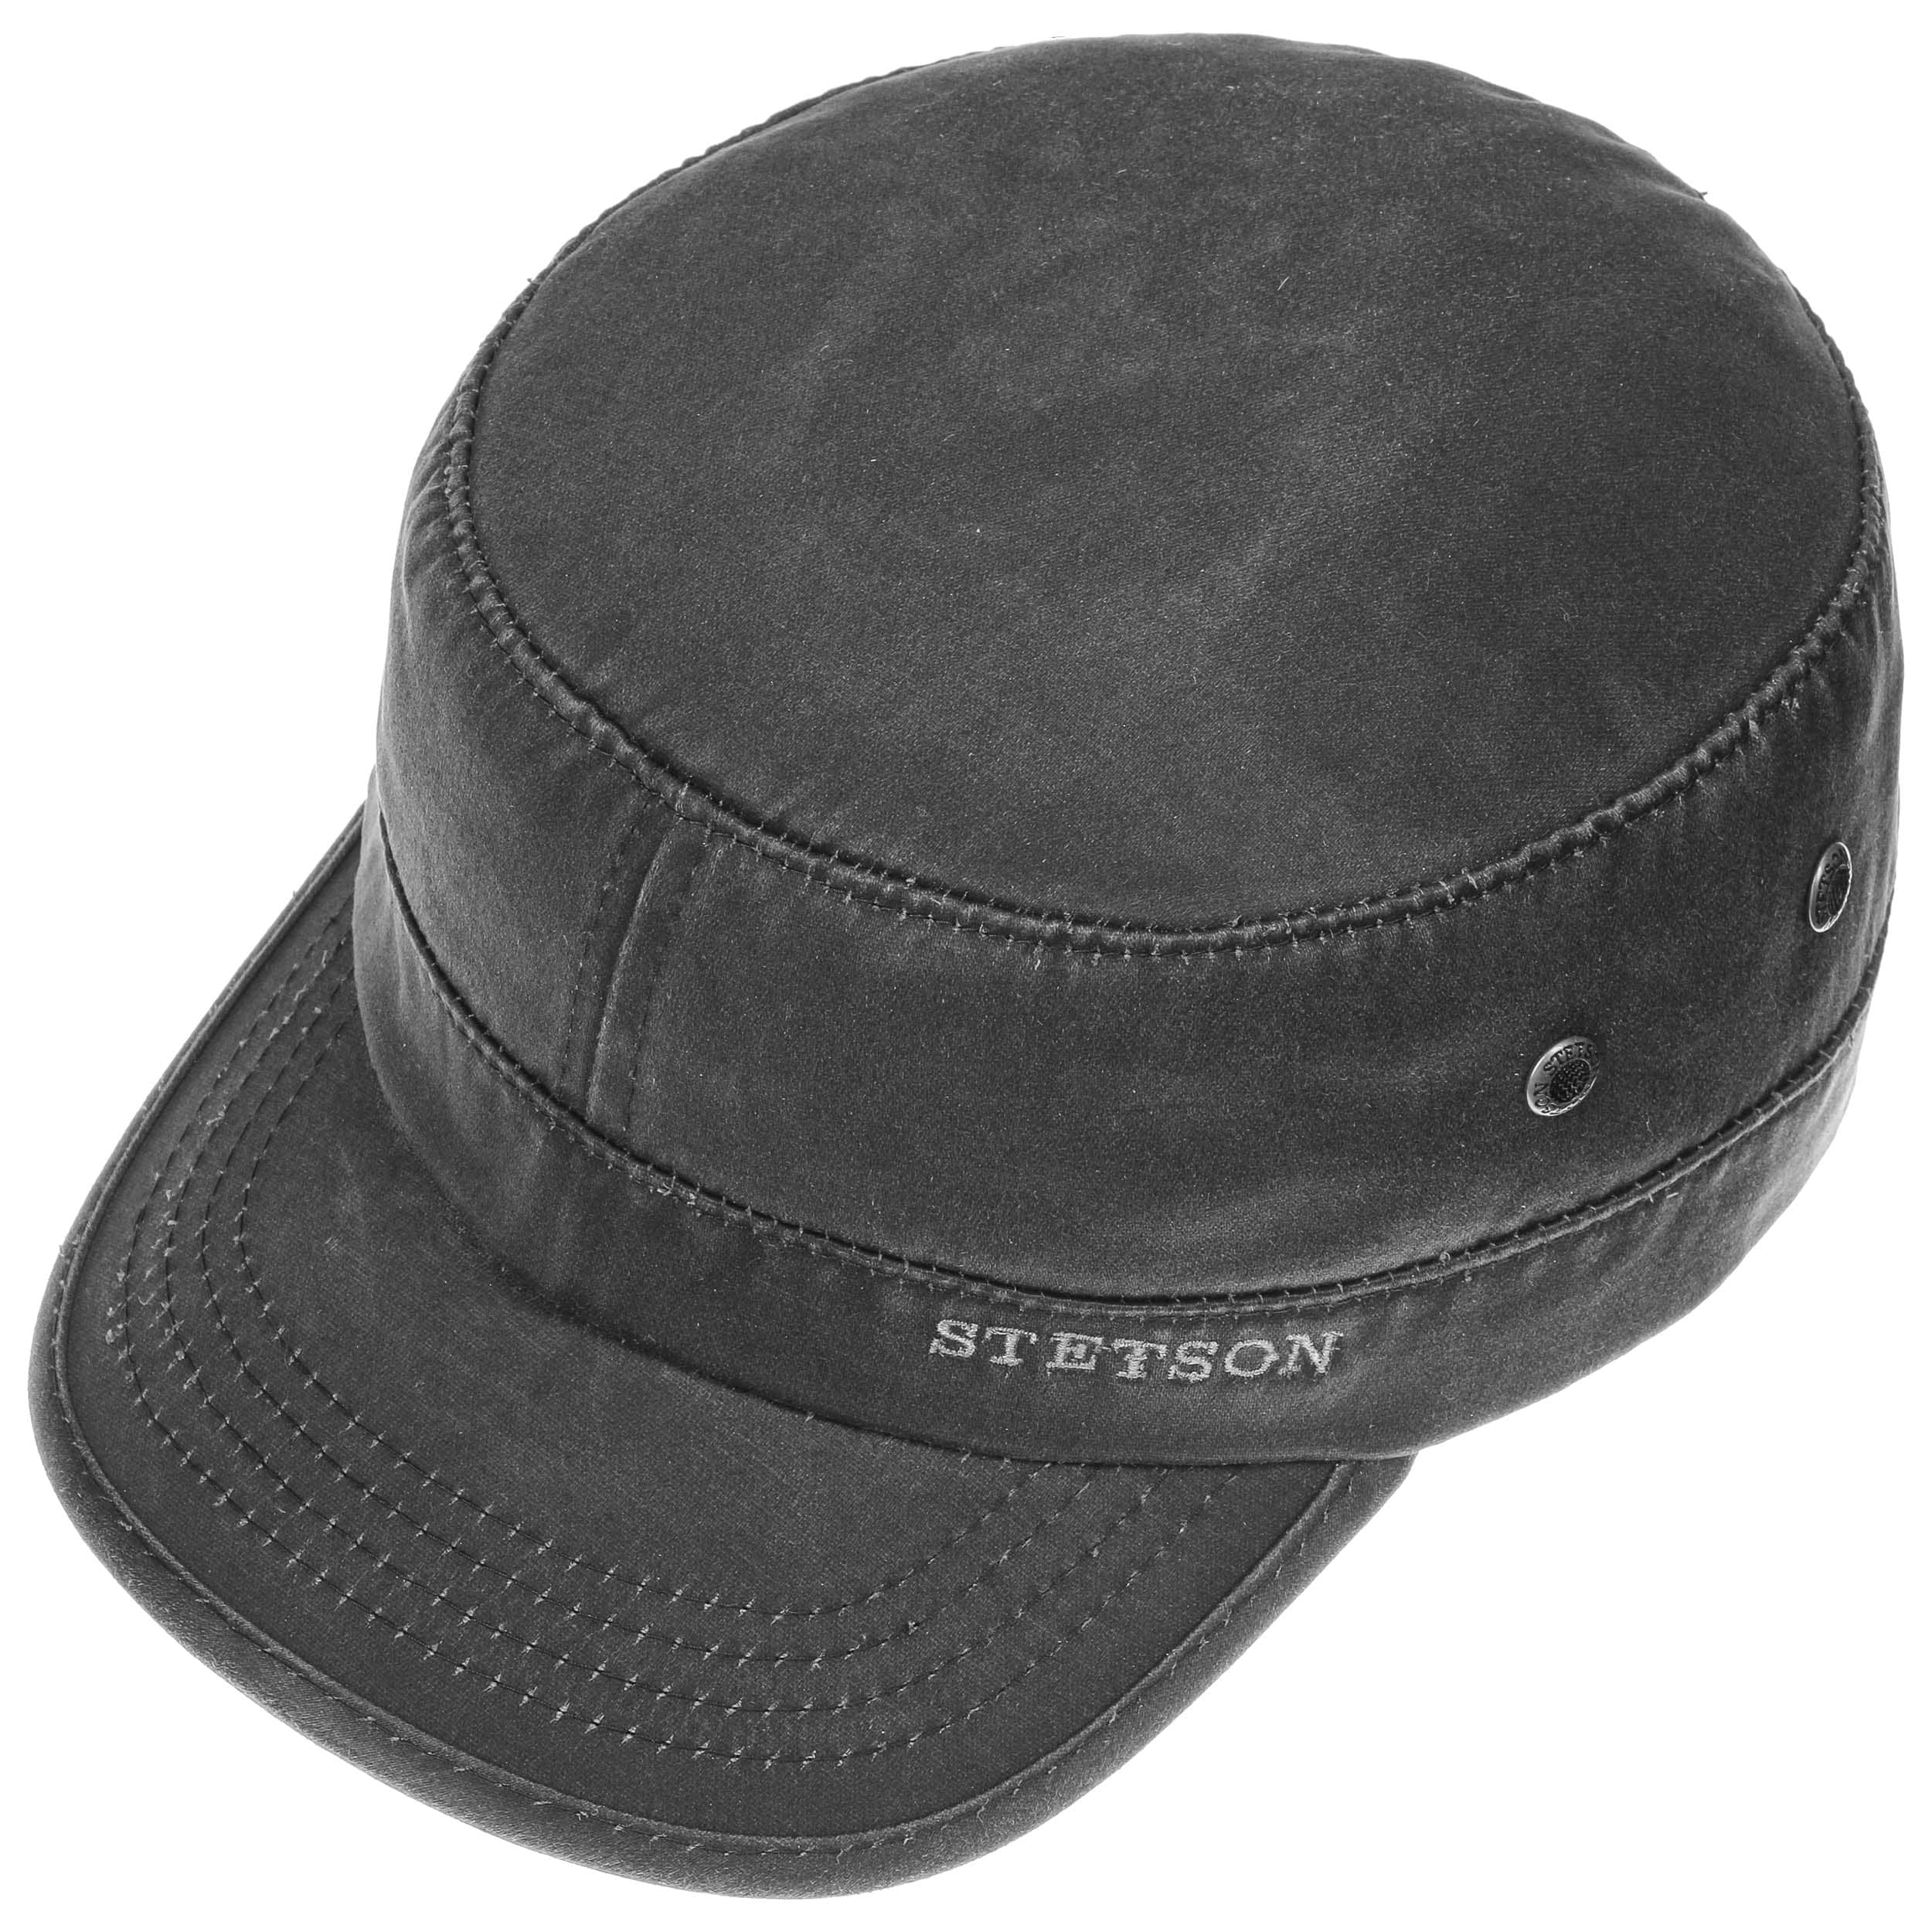 ... Datto Army Cap by Stetson - black 1 ... 29e10ee67c5